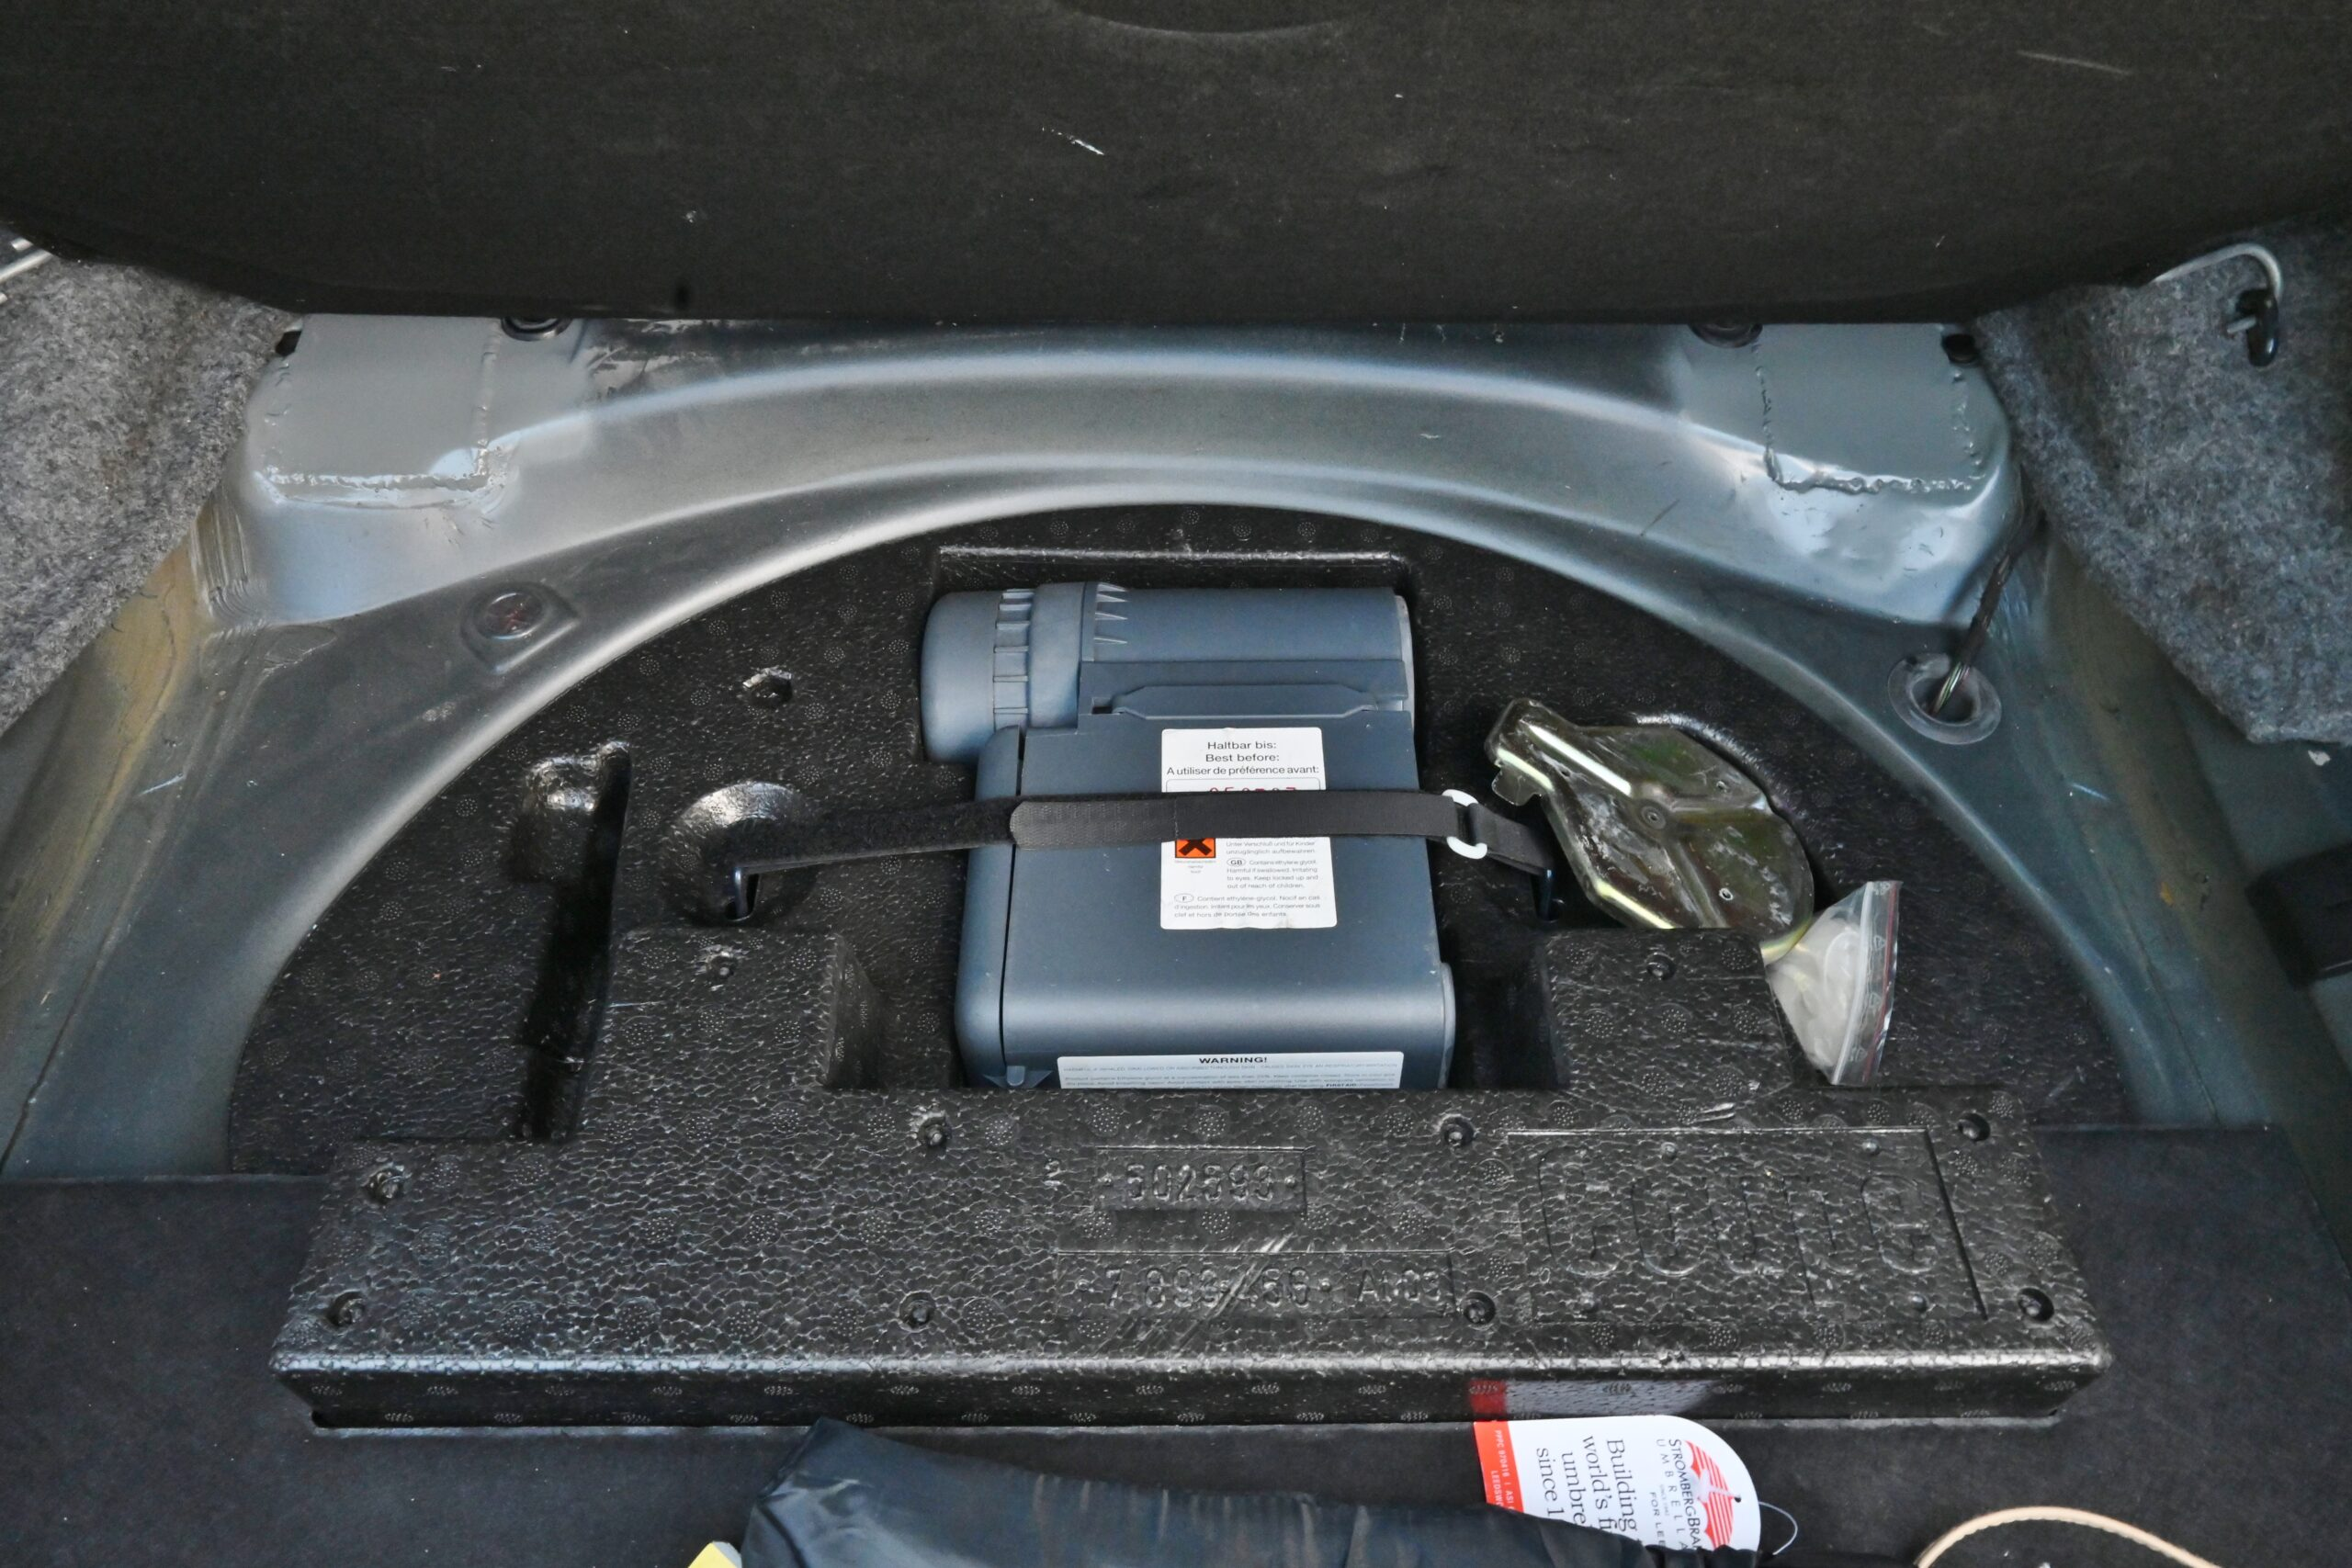 2003 BMW M3 E46 CSL Airbox-Stoptech Big Brakes-Bilstein Coilovers-Subframe Reinforced-3.91 gears